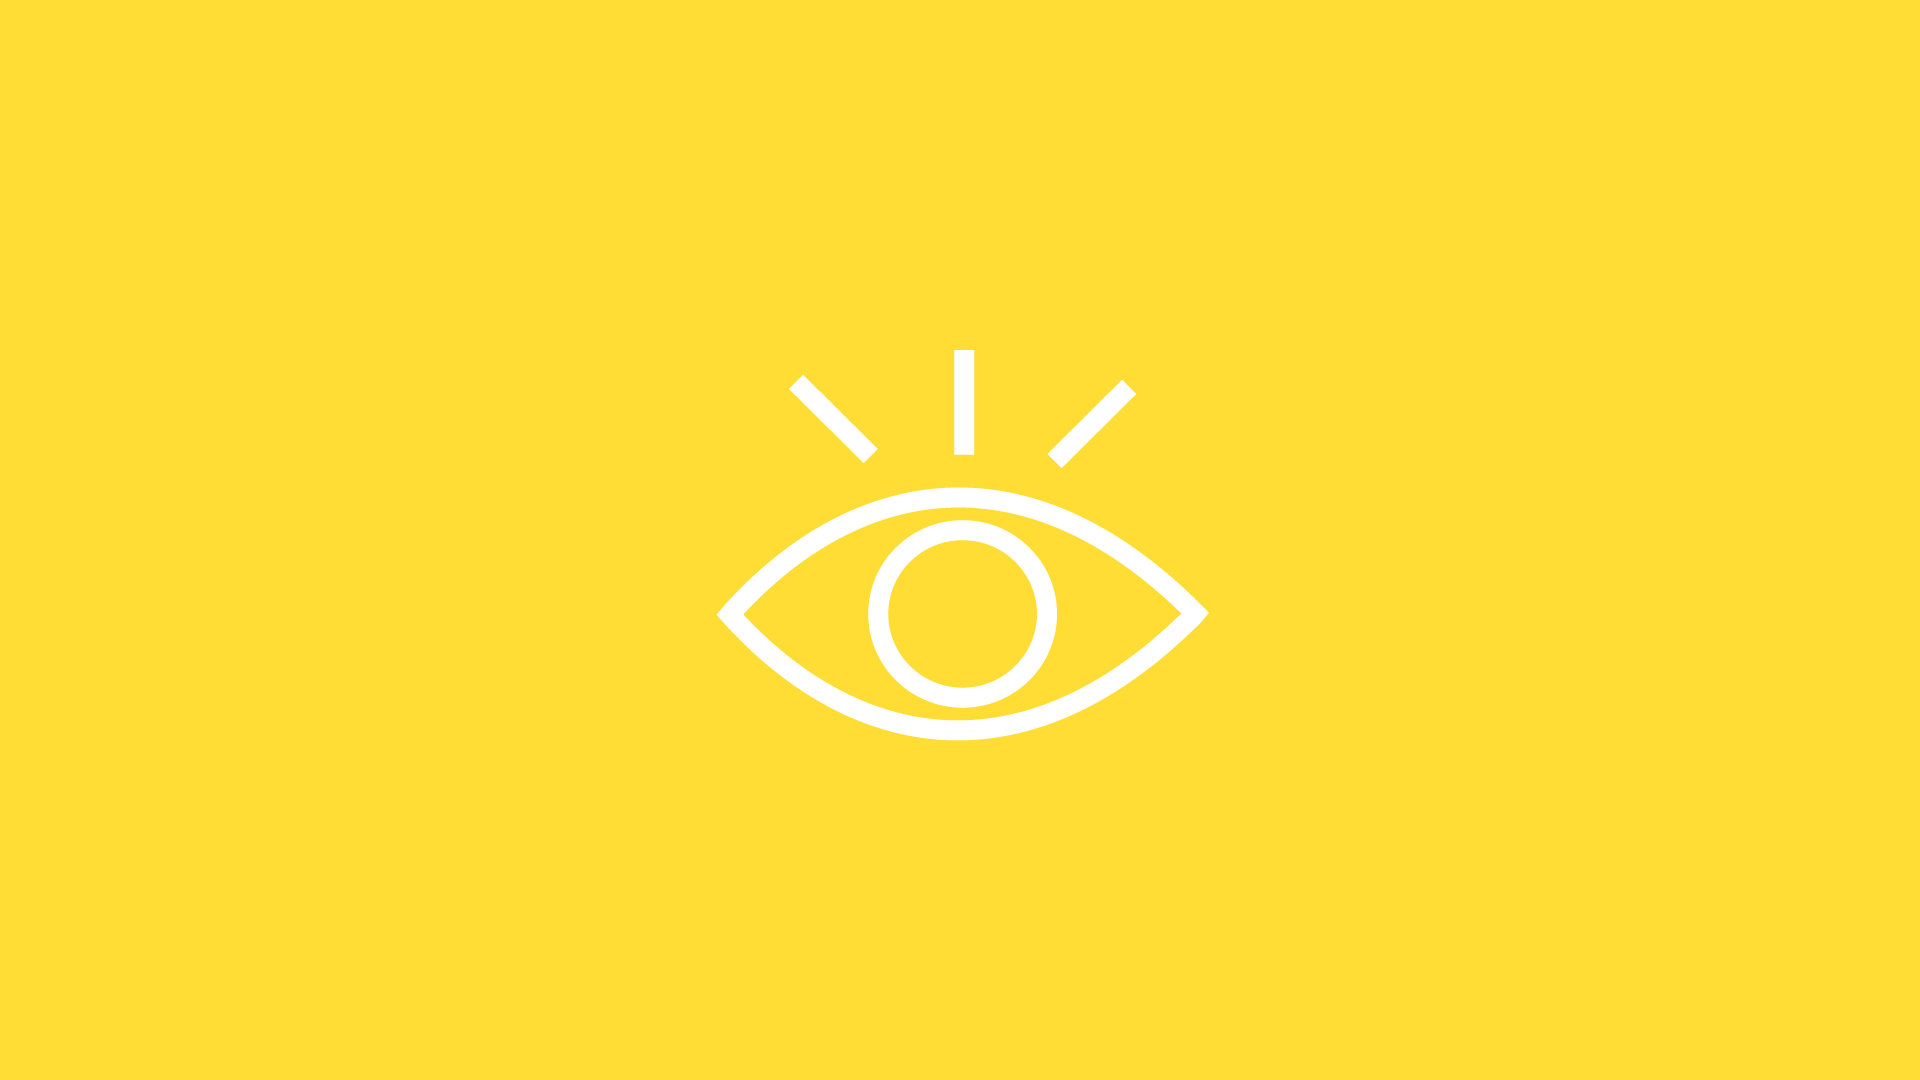 white eye icon on yellow background